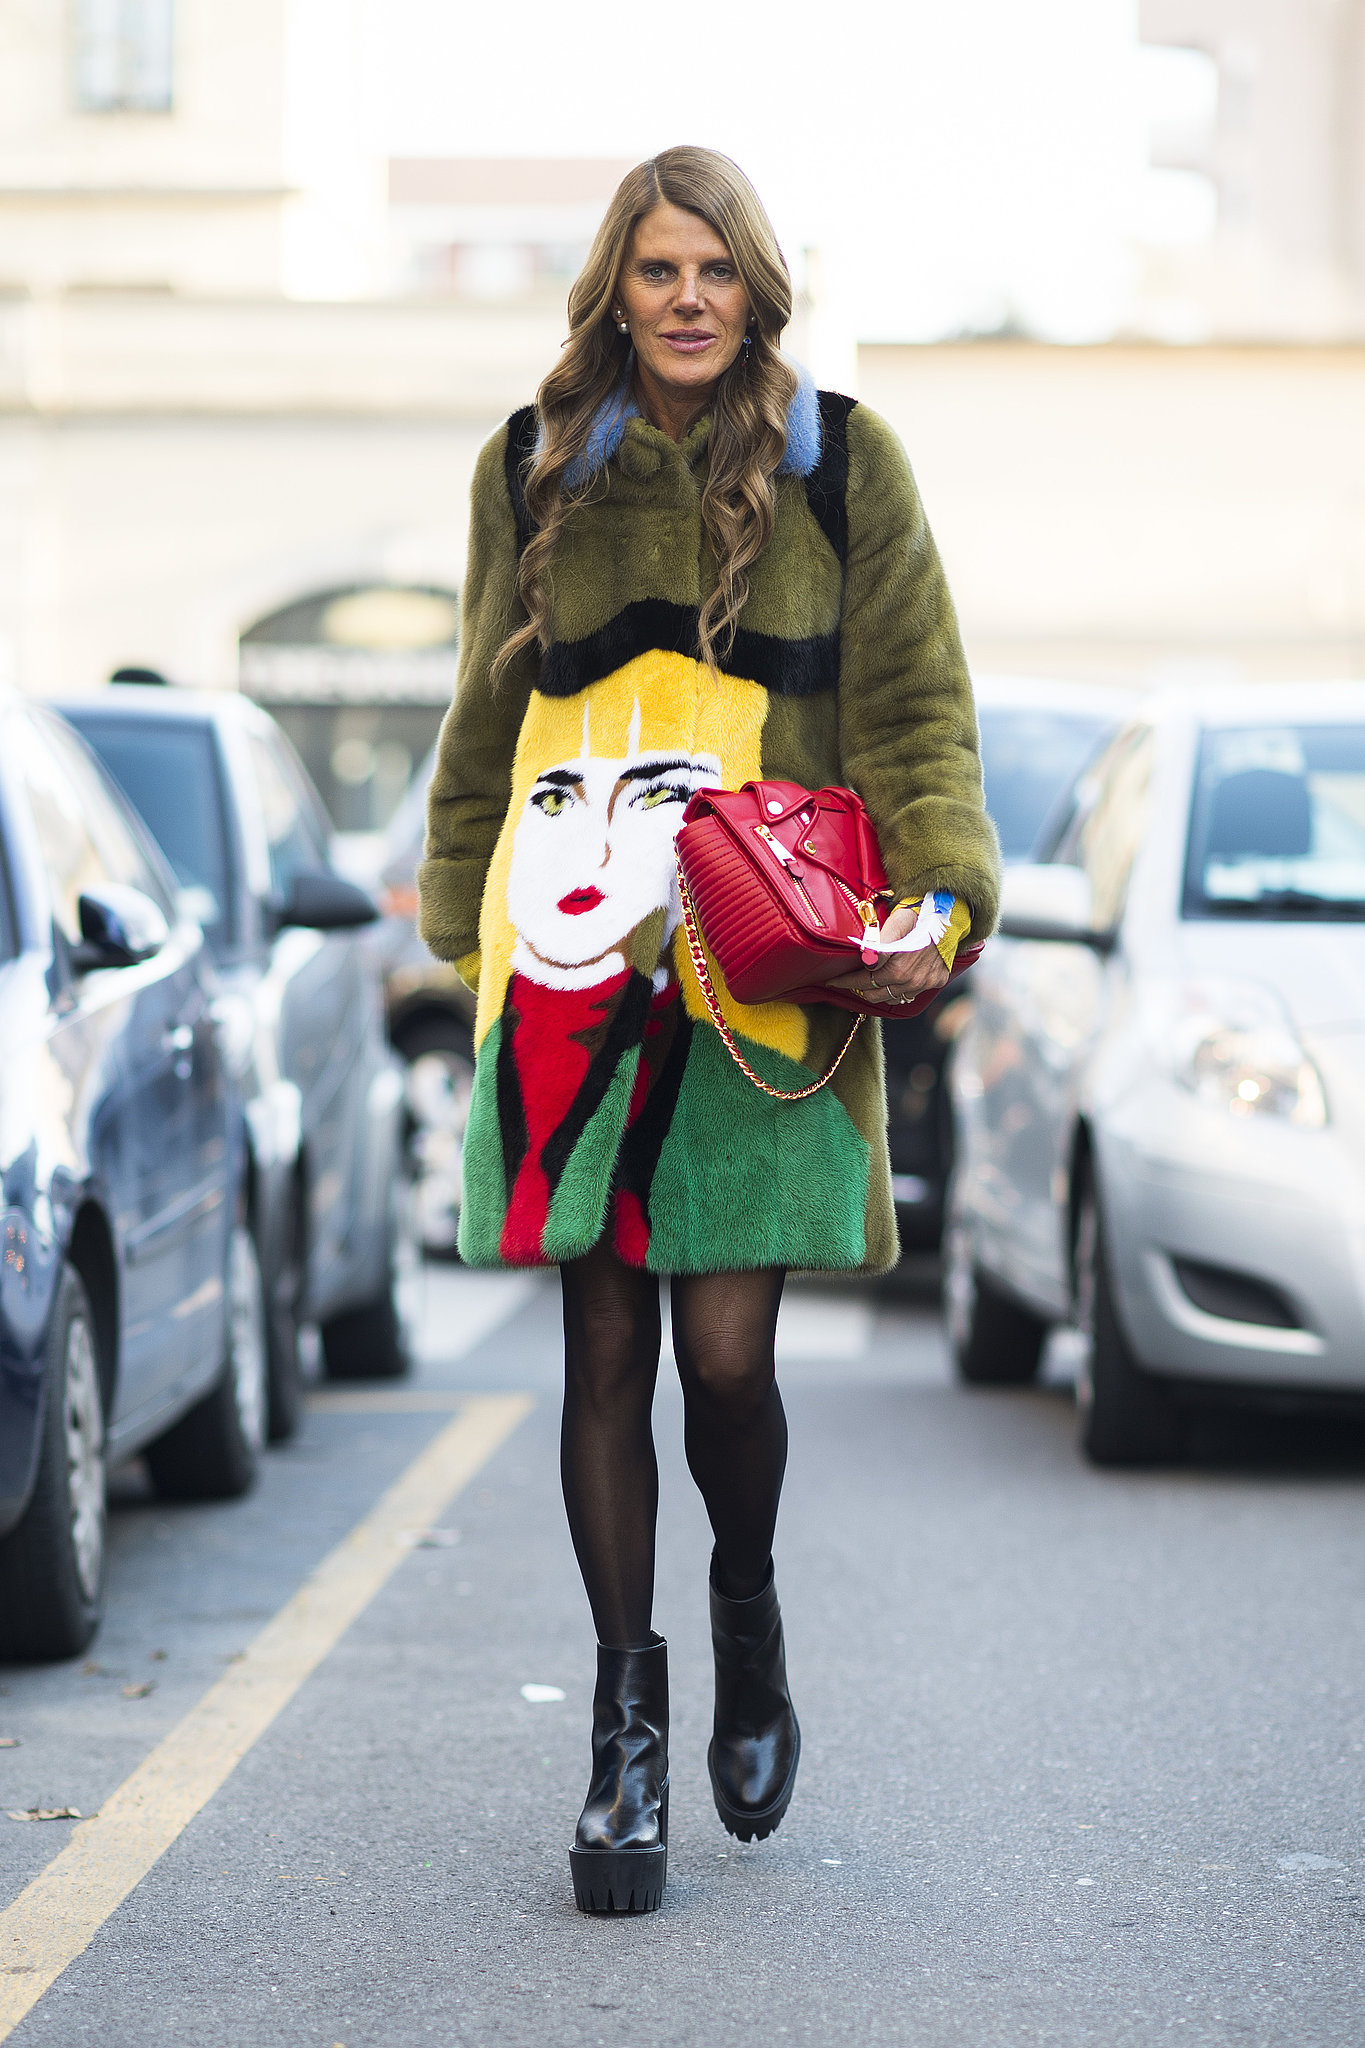 Anna Dello Russo may just be showing off the buzziest item of the season with her Prada pop-art coat. Source: Le 21ème | Adam Katz Sinding